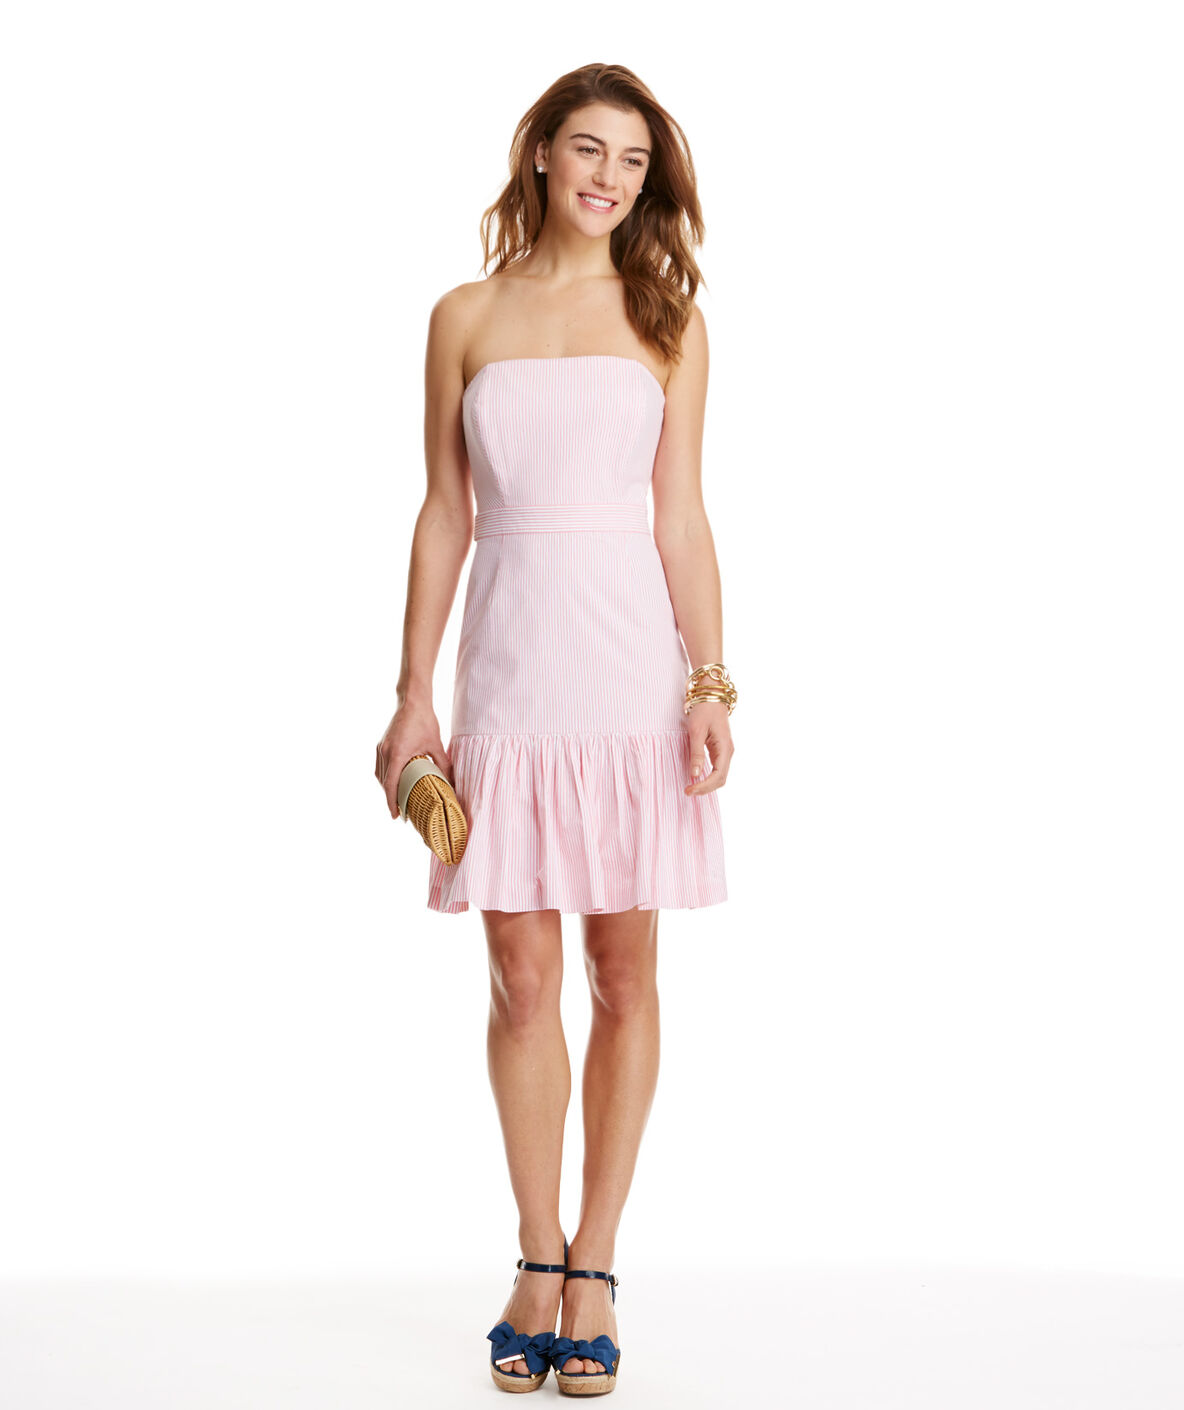 Shop Seersucker Strapless Dress at vineyard vines